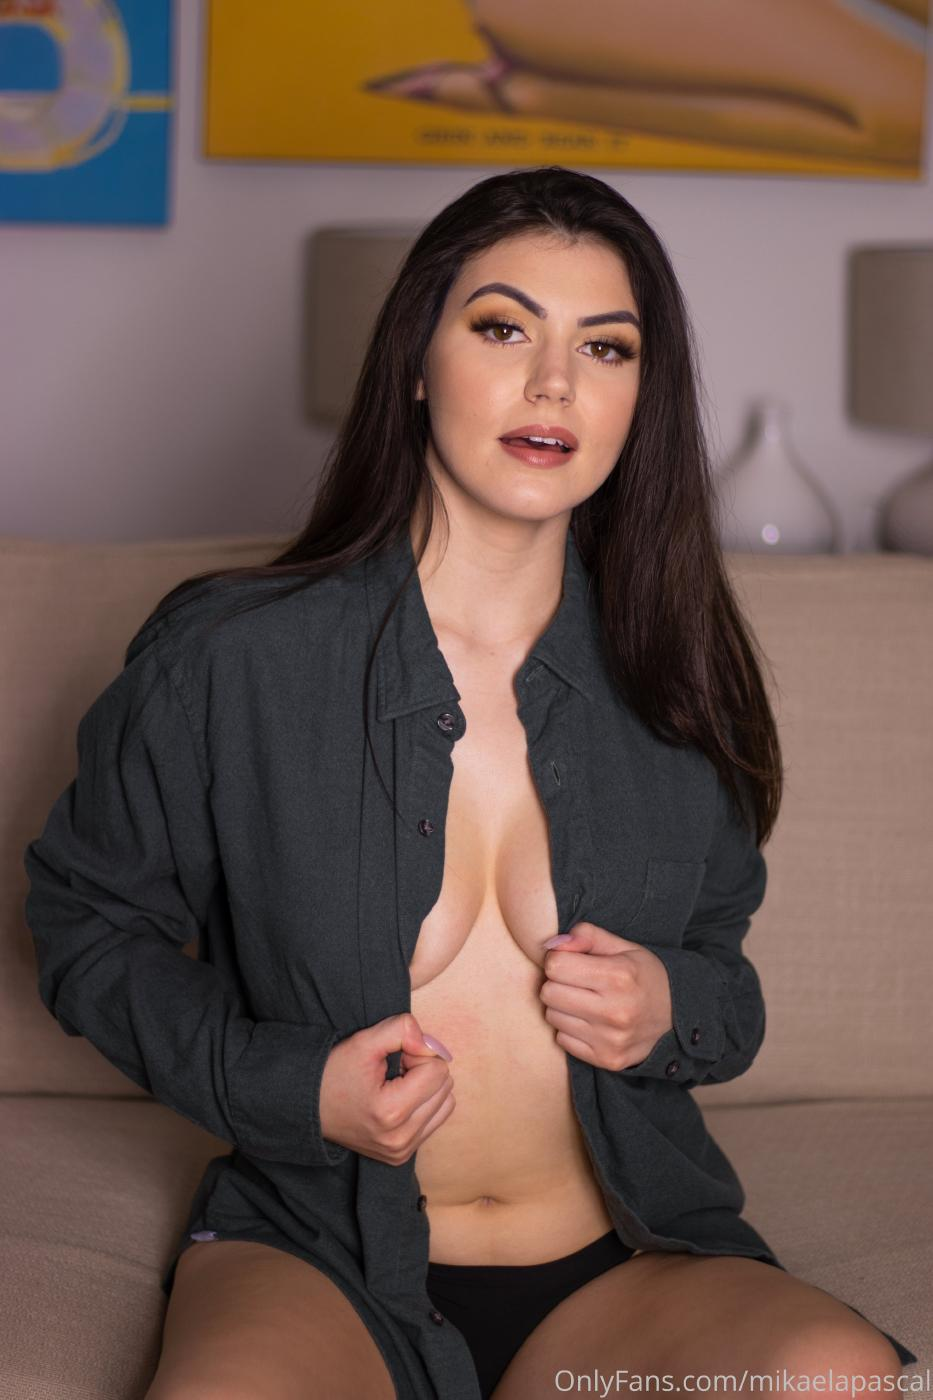 Mikaela Pascal Topless Blouse Onlyfans Set Leaked 0005